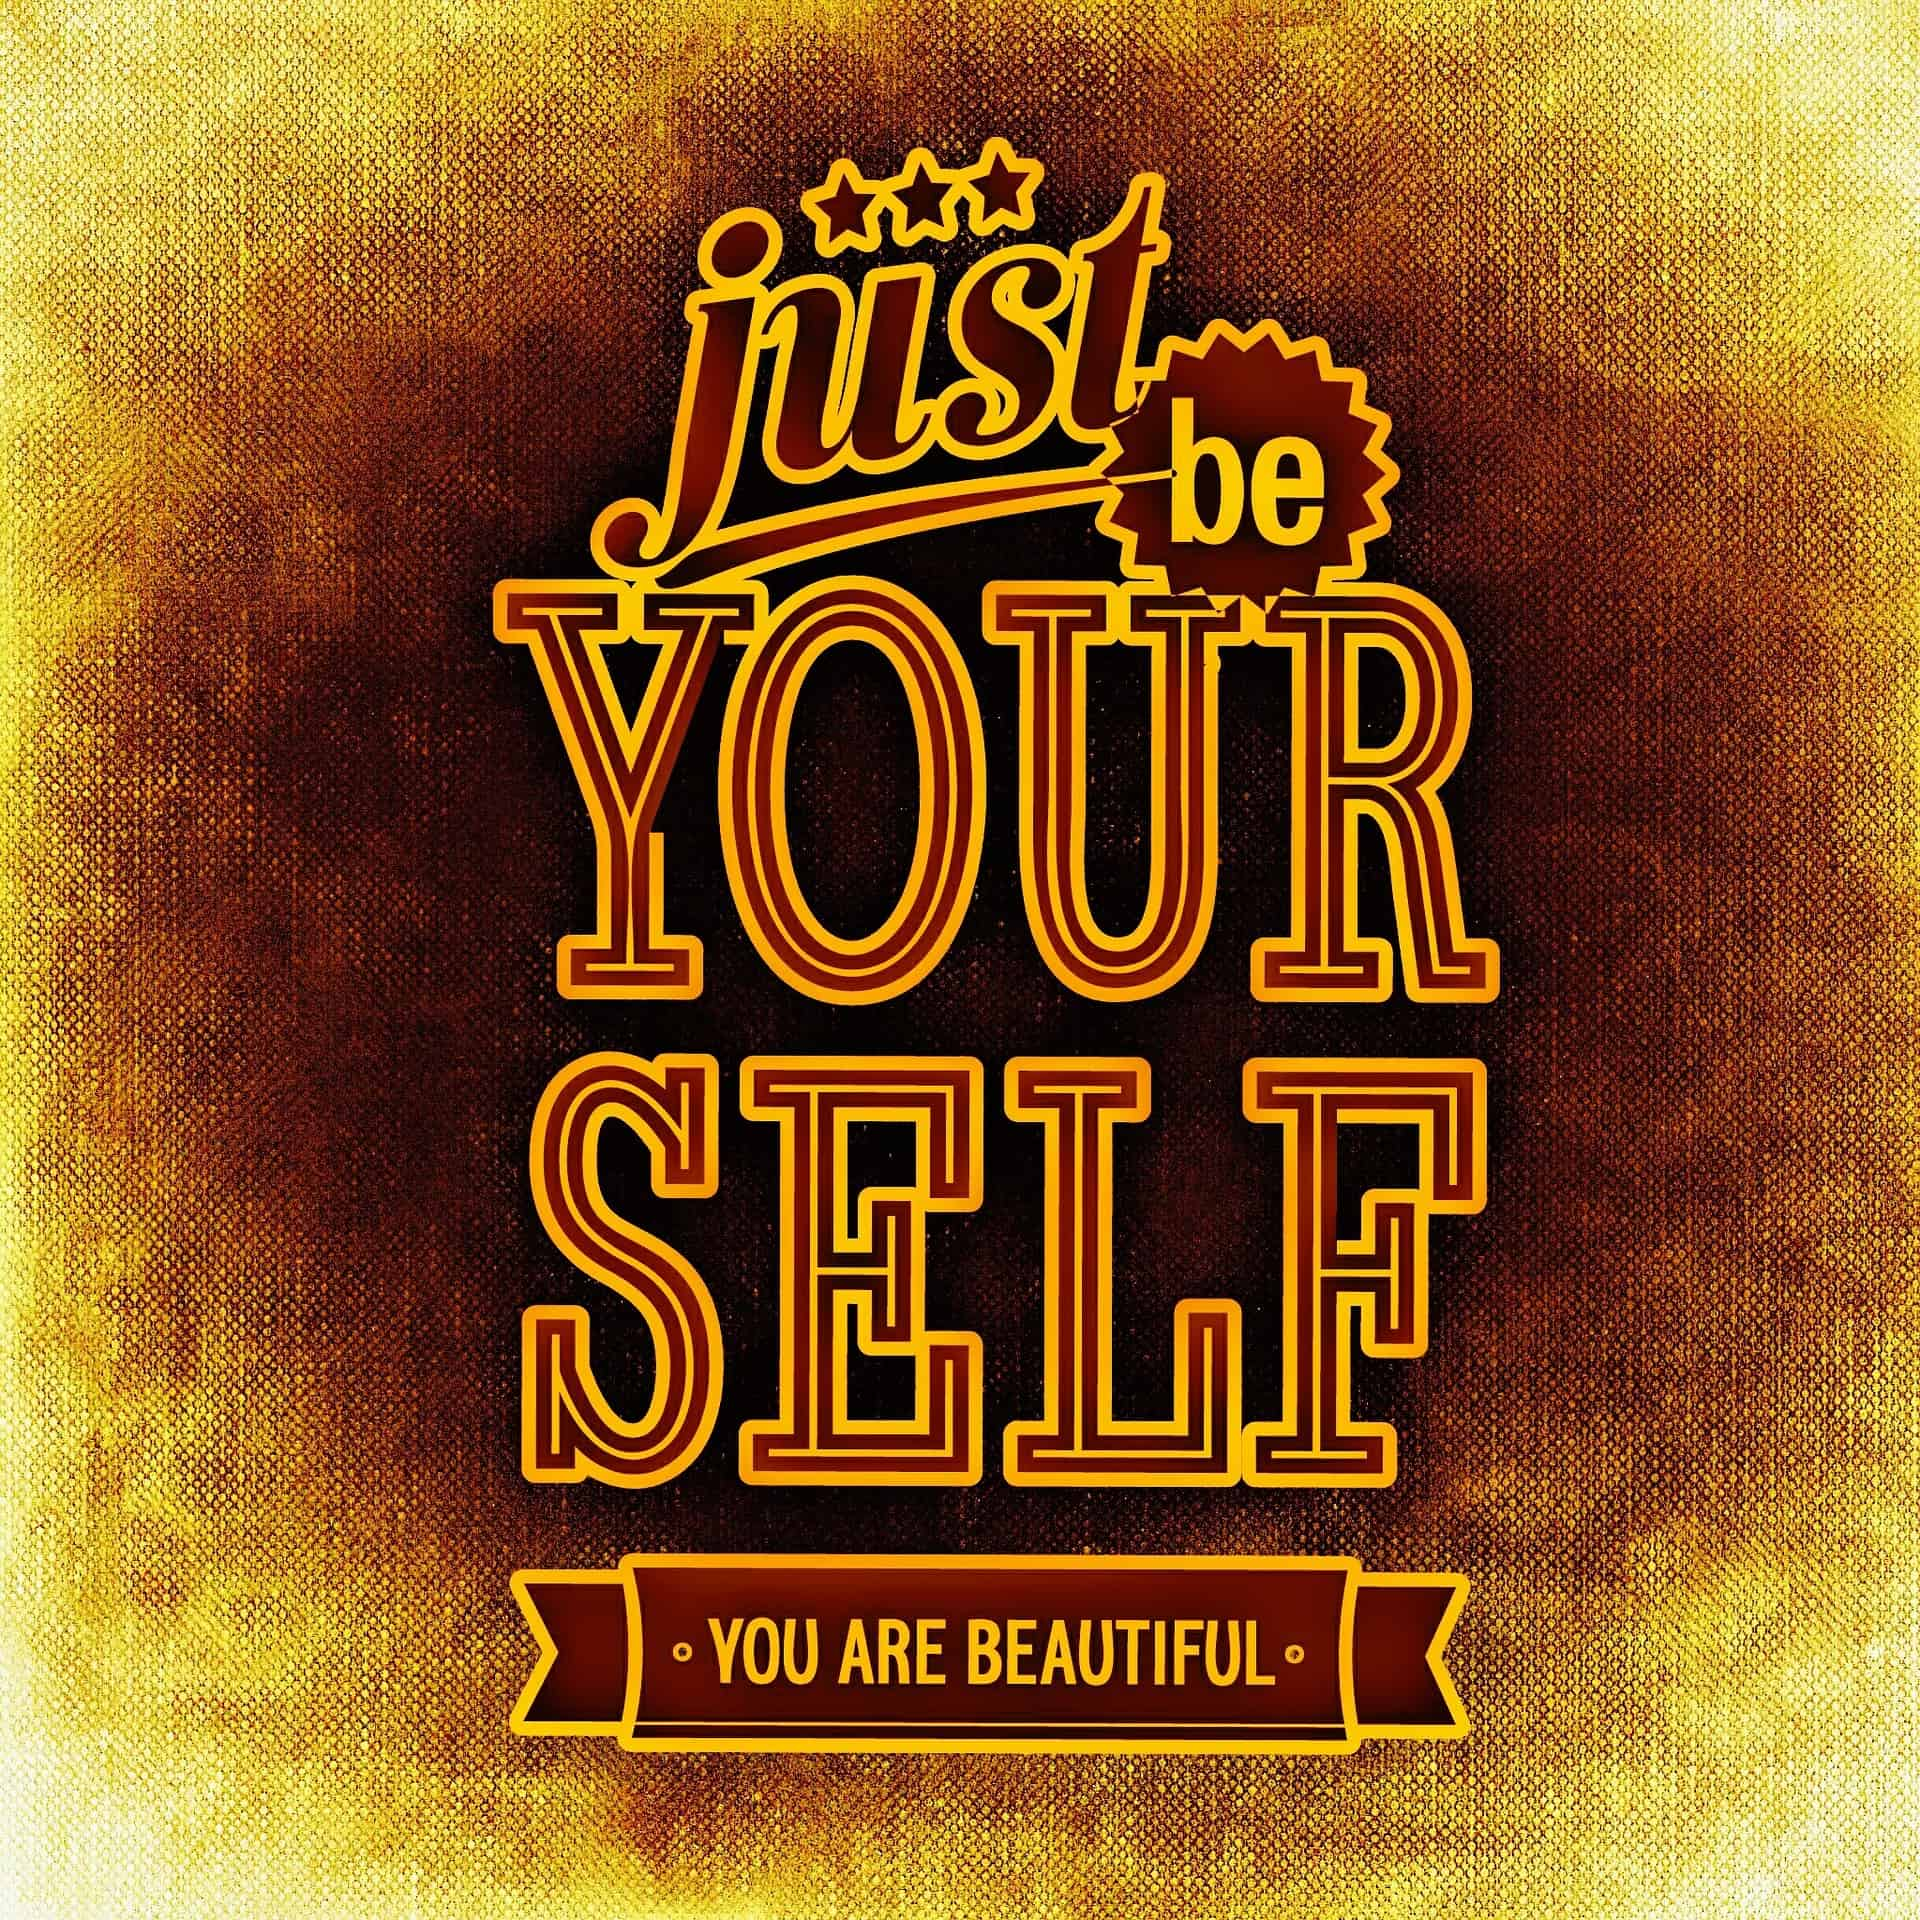 Just Be Yourself. You Are Beautiful